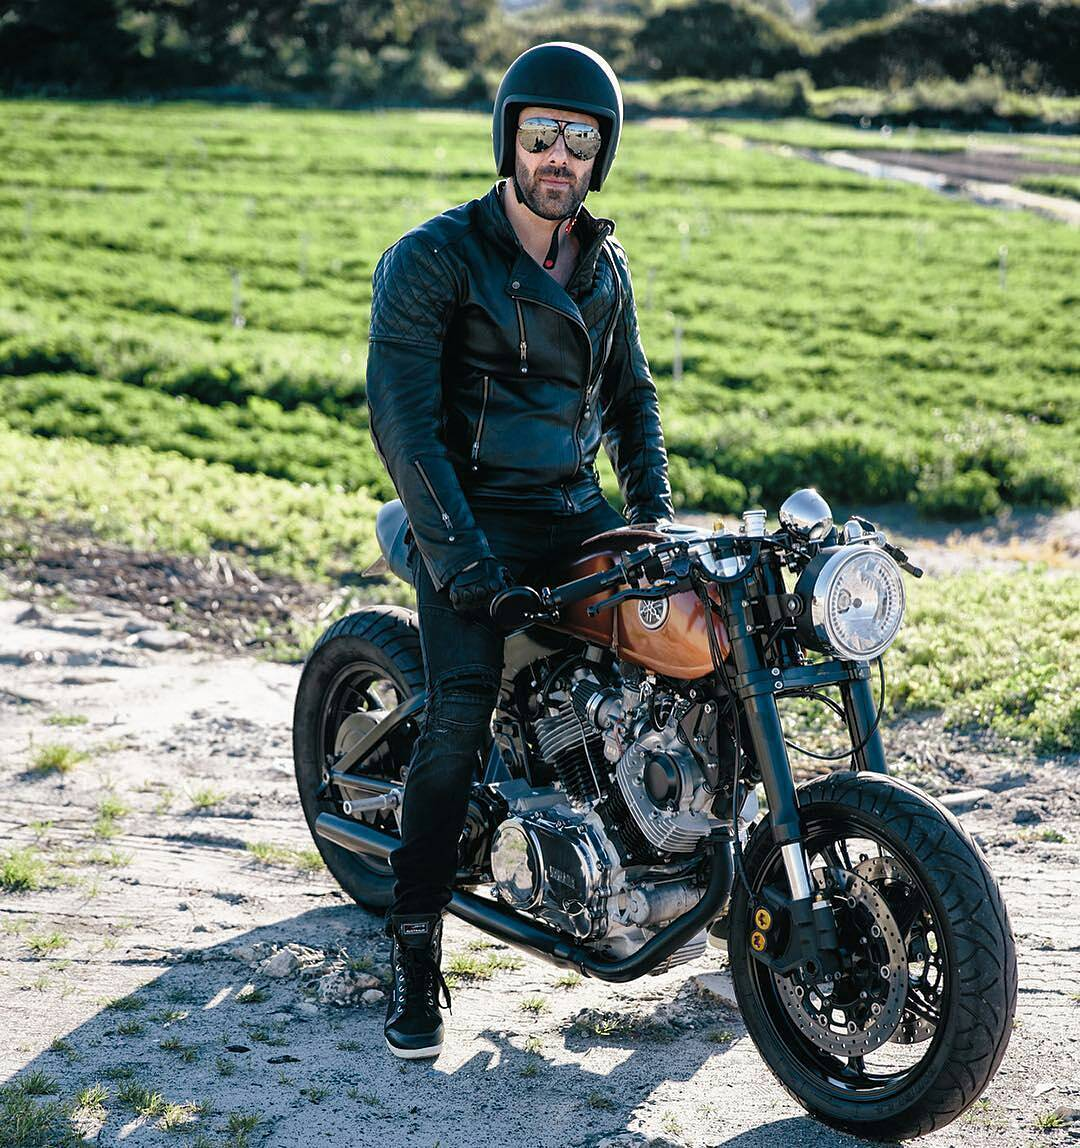 By Style & Ride - 1982 Yamaha XV1000 from Ace Adriano via Throttleroll @throttleroll 📷 Pete Cagnacci @petecagnacci .  #caferacer #caferacers #caferacersofinstagram #caferacersculture #caferacerbuilds #vintage #vintagestyle #vintagefashion #motocycle #moto #motos #motorcycles #oldstyle #oldschool #bratstyle #motorbike #motor #helmet